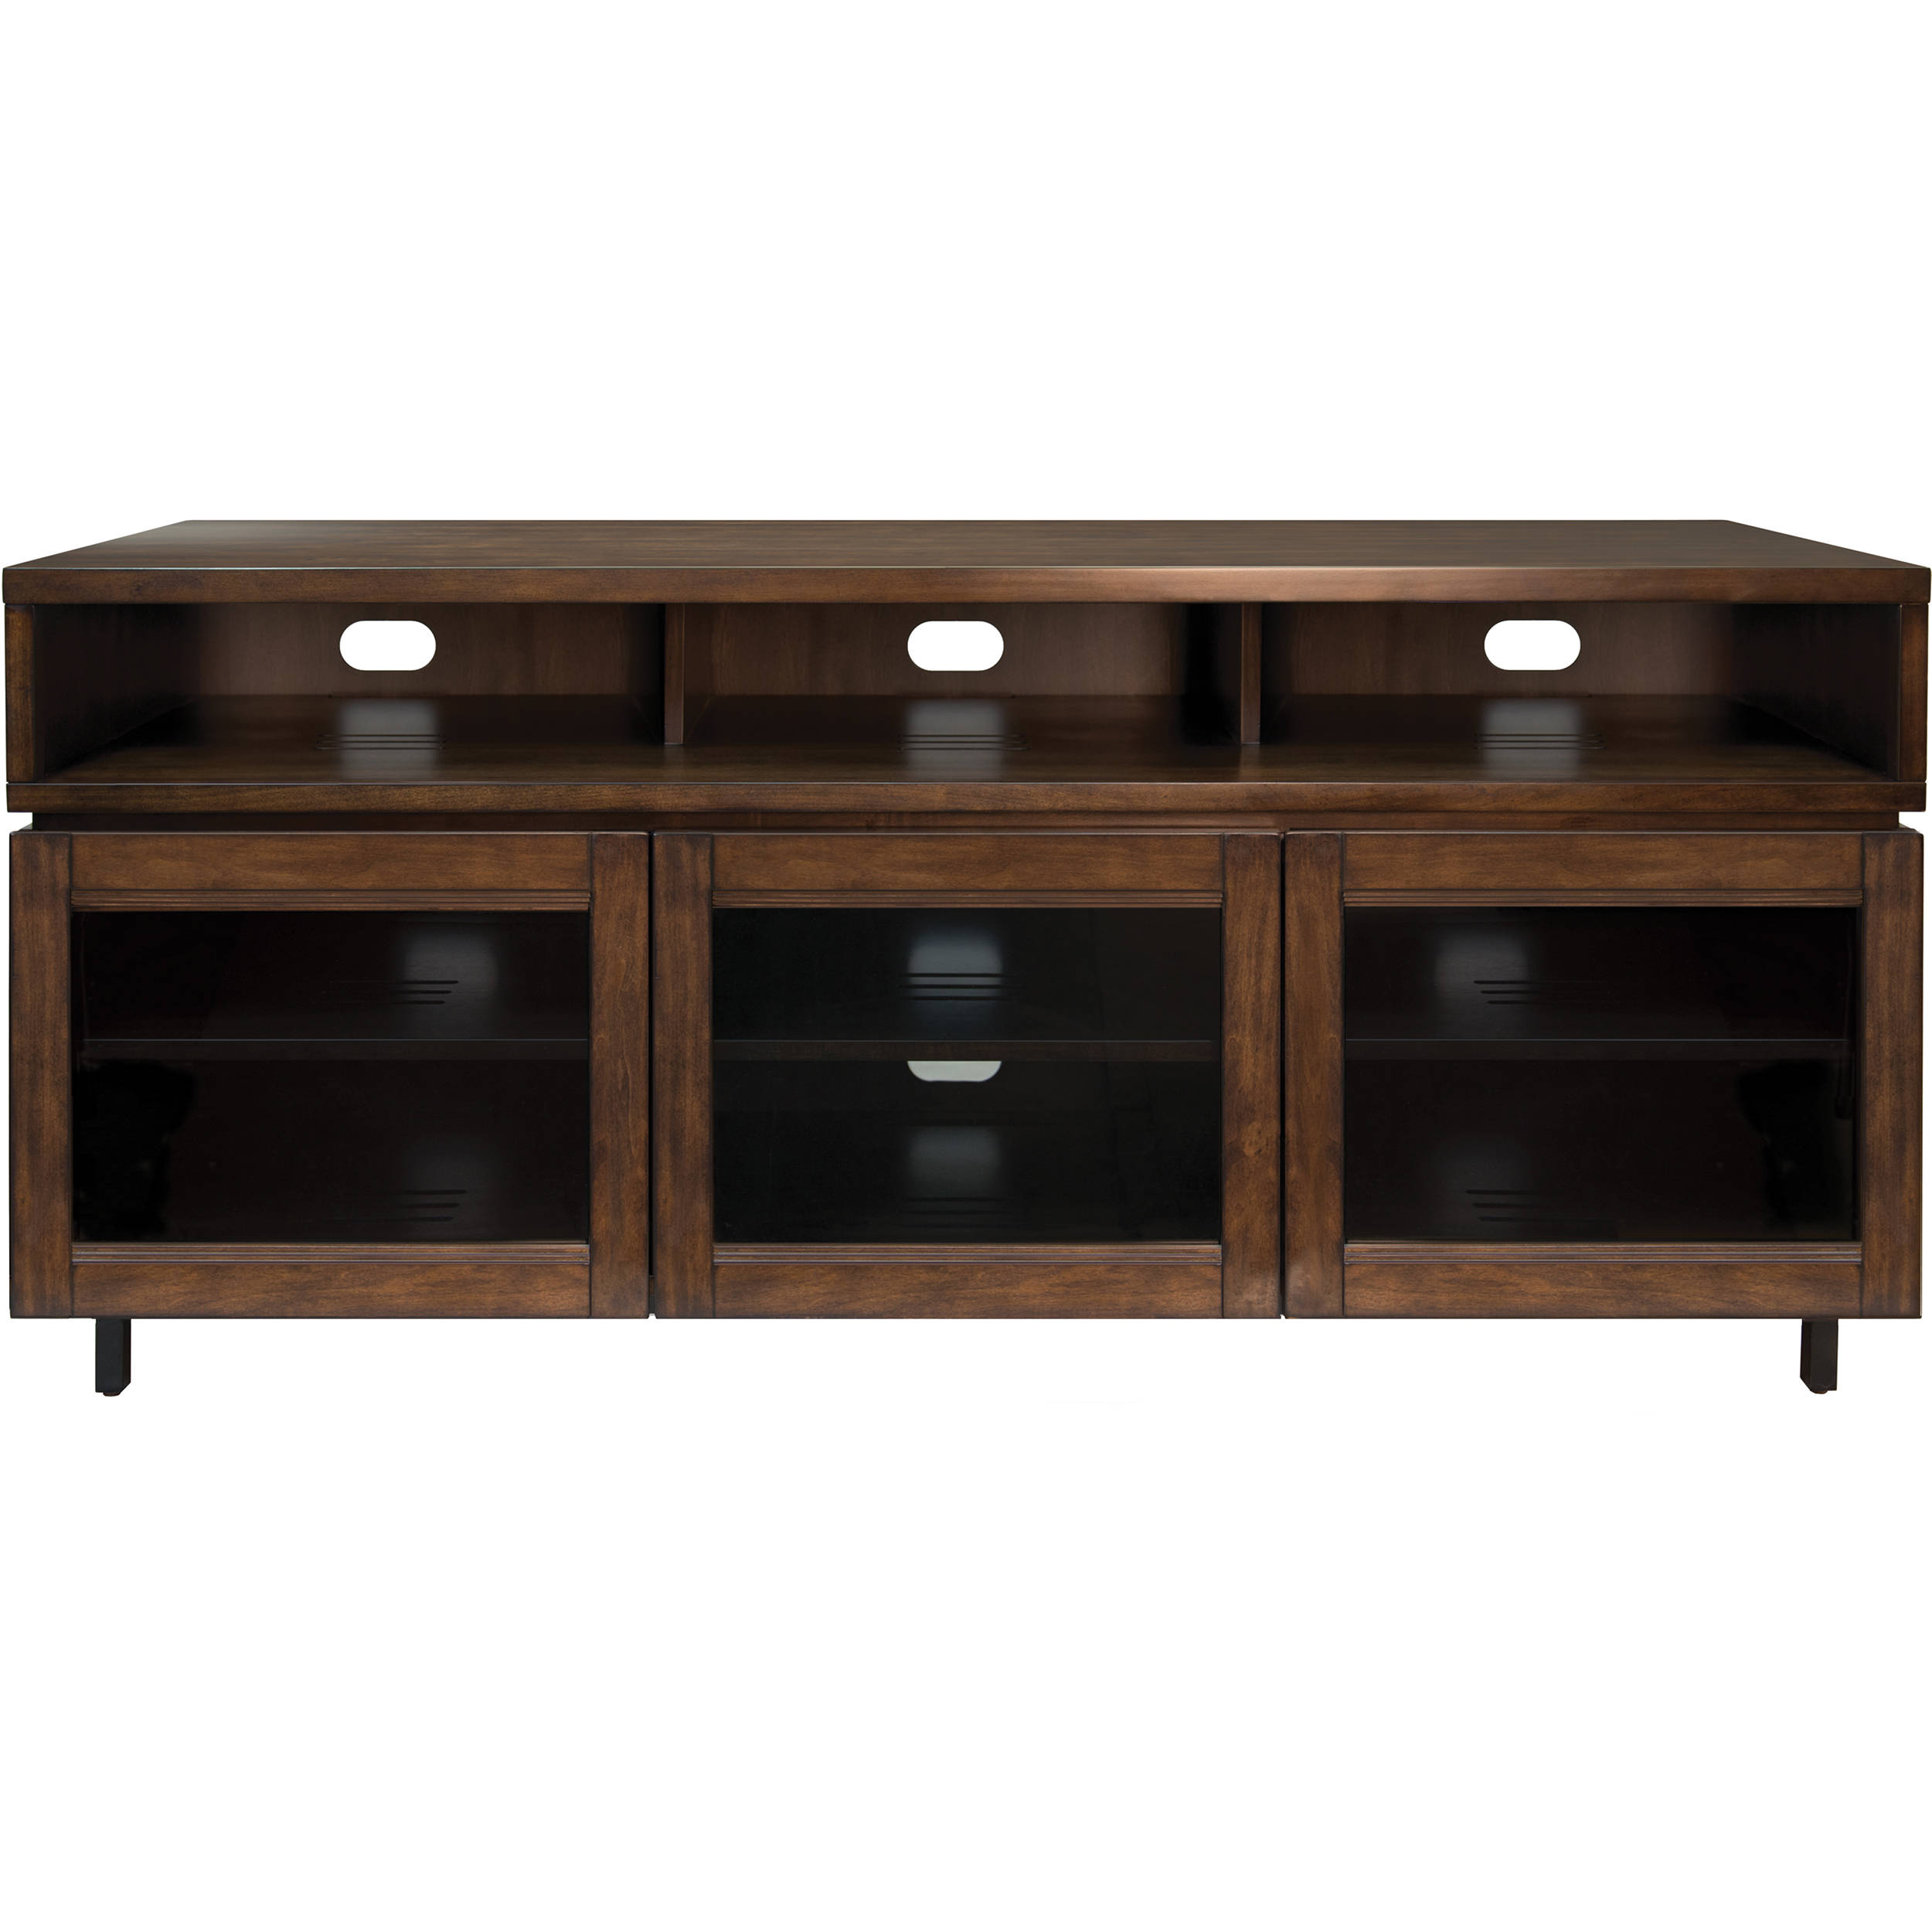 Bell 39 o pr45 cocoa finish wood home entertainment cabinet pr45 for Cocoa cabinets